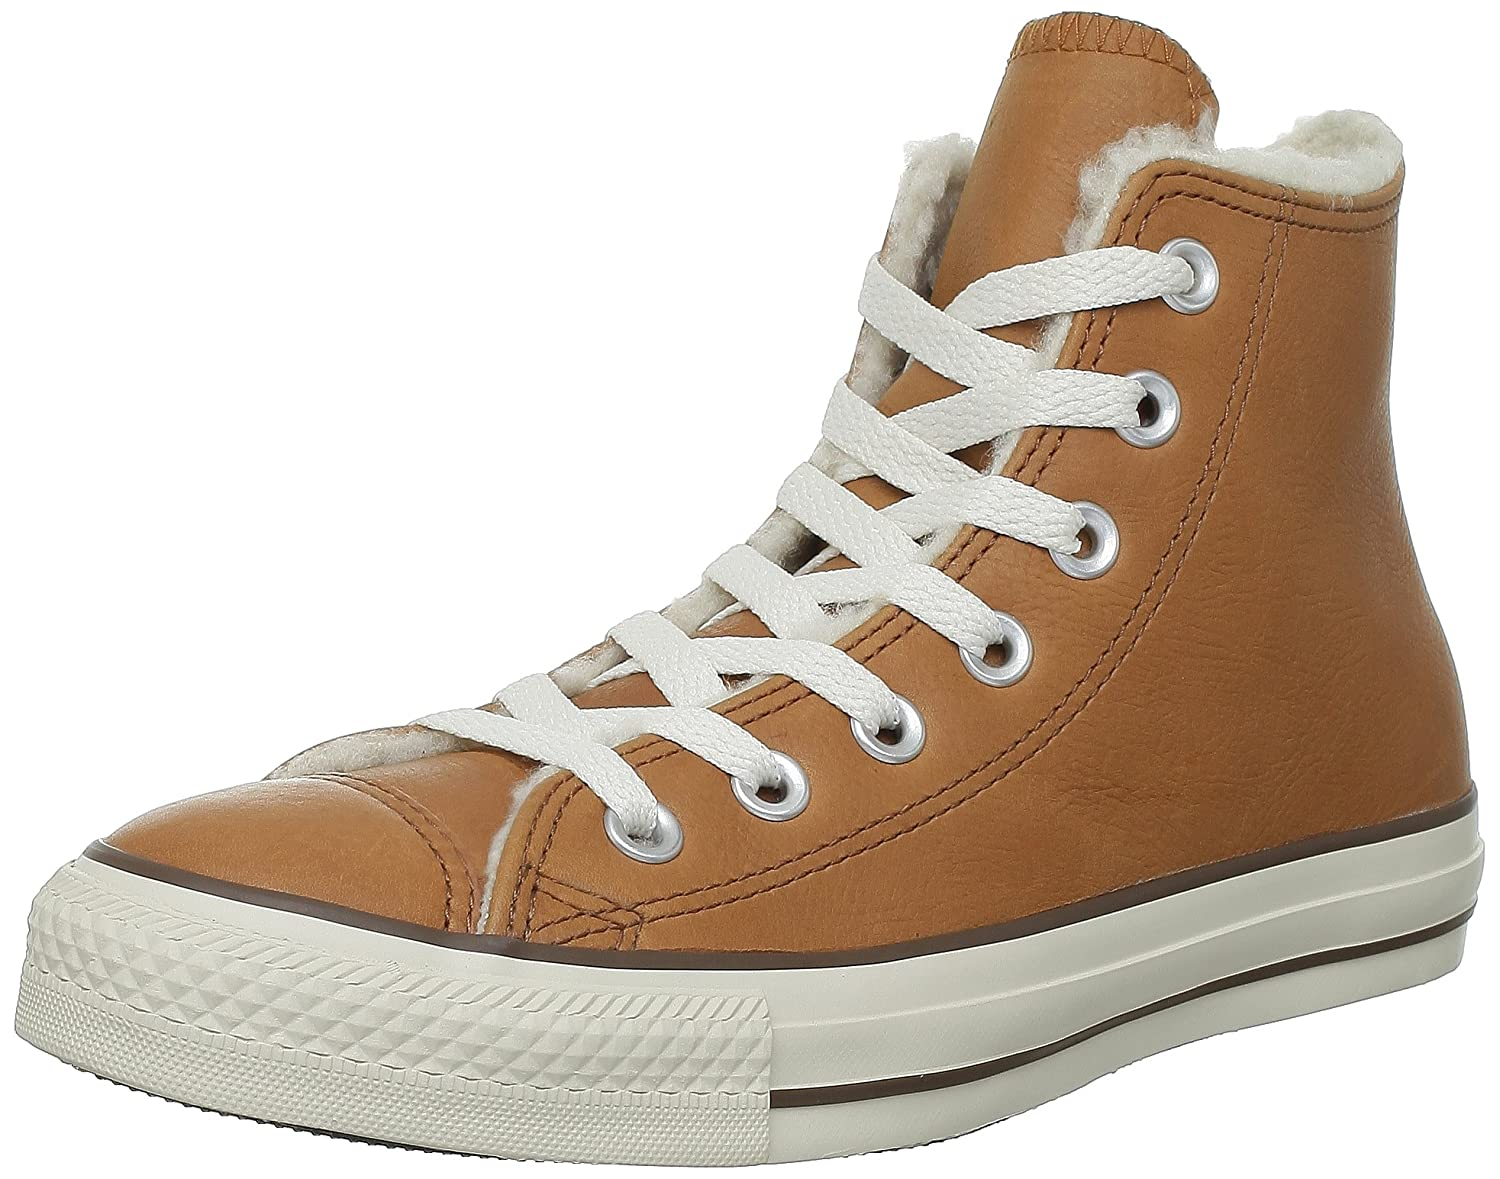 Converse Star Chuck Taylor All Star Converse Shearling Leather Hi, Baskets mode mixte adulte 37 EU|Marron (Rouille) 1dc206